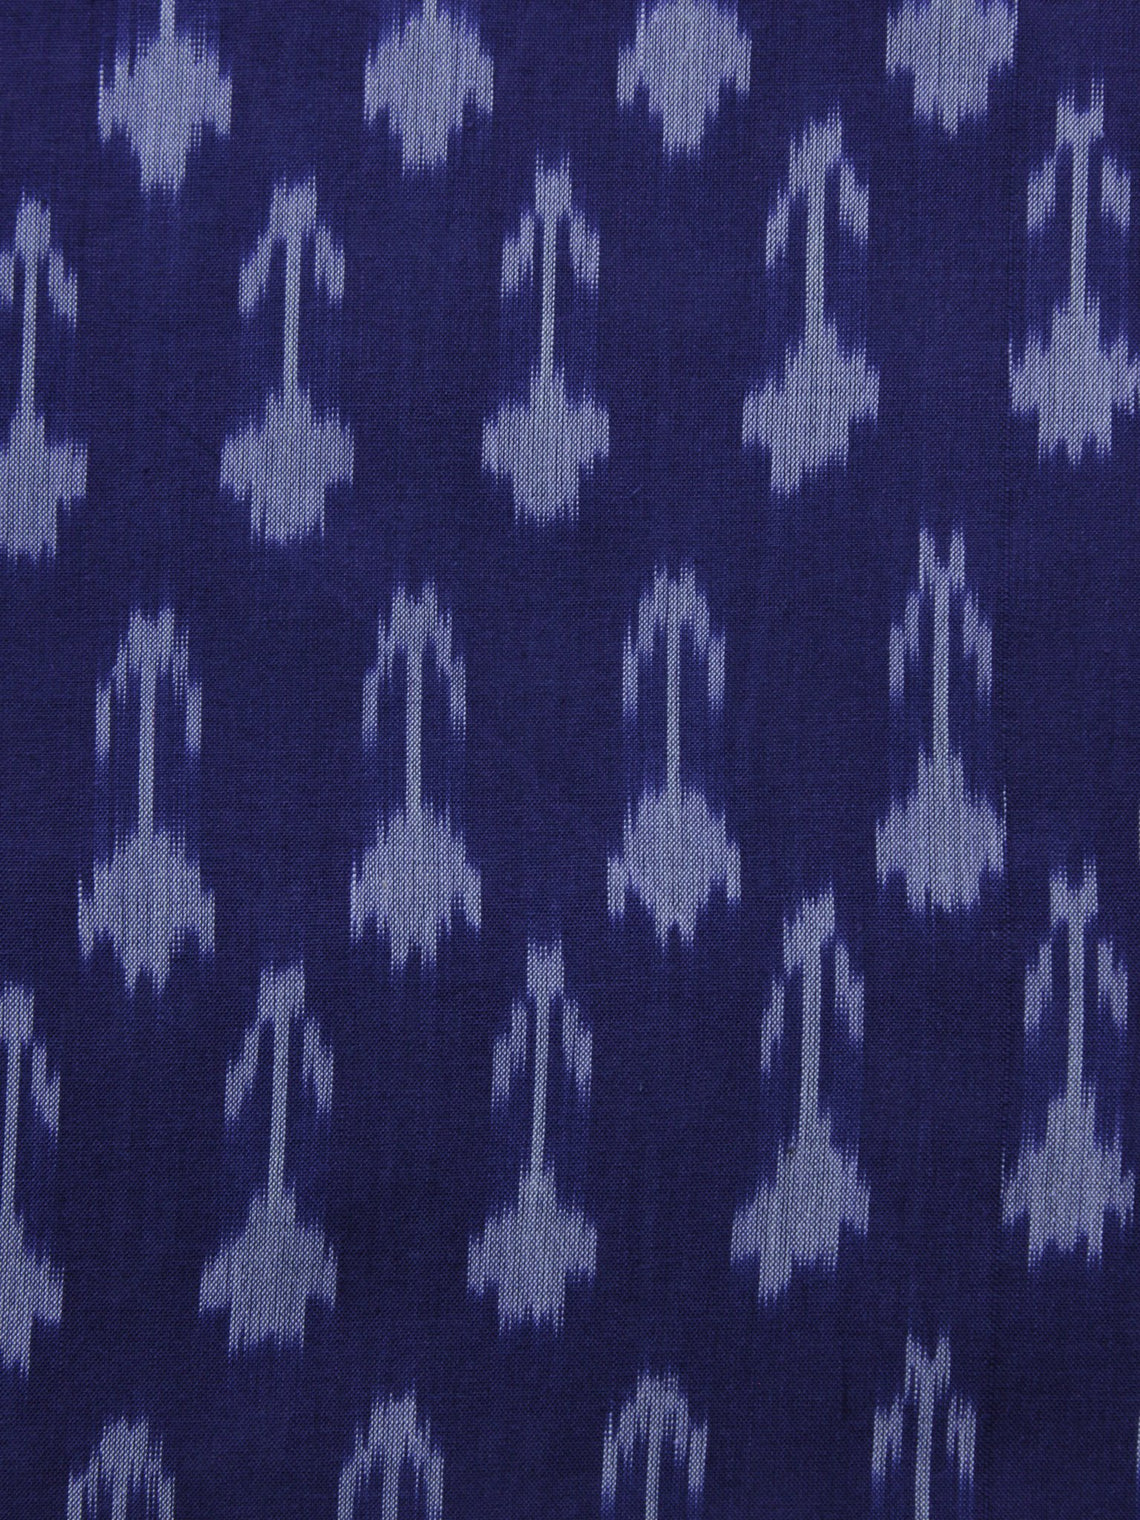 Blue Ivory Pochampally Hand Weaved Ikat Mercerised Cotton Fabric Per Meter - F002F1030